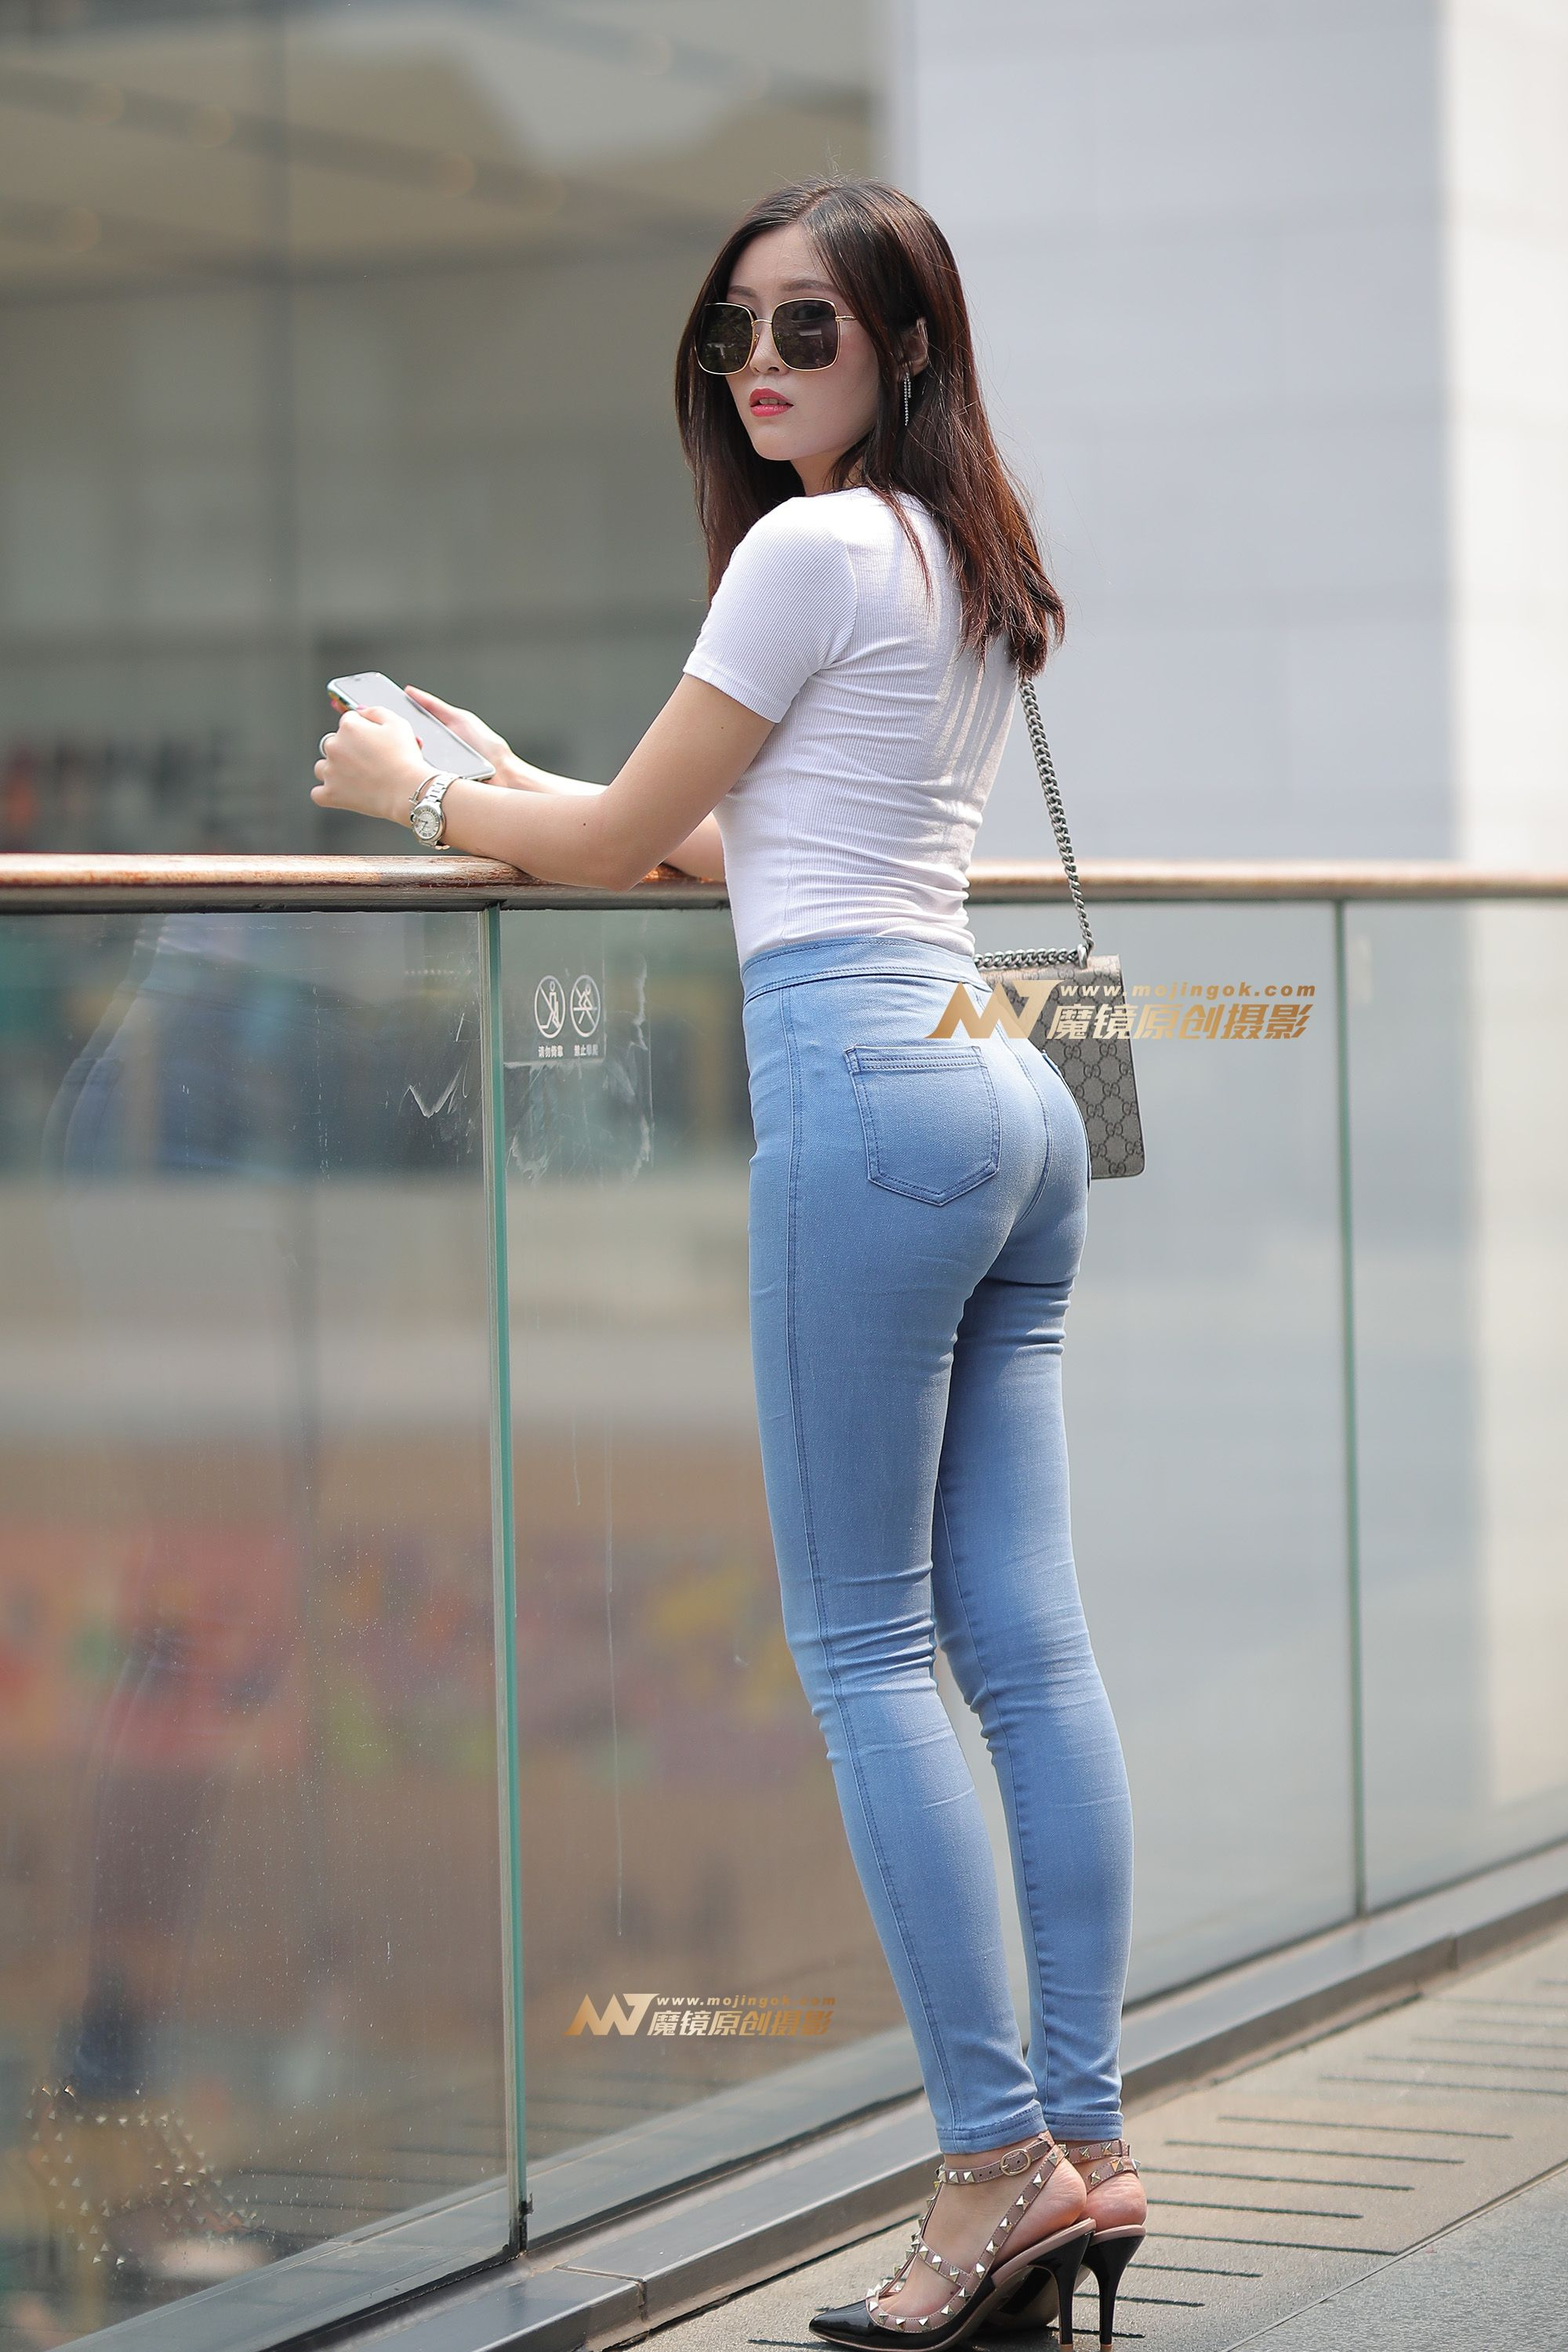 Pin on booty jeans